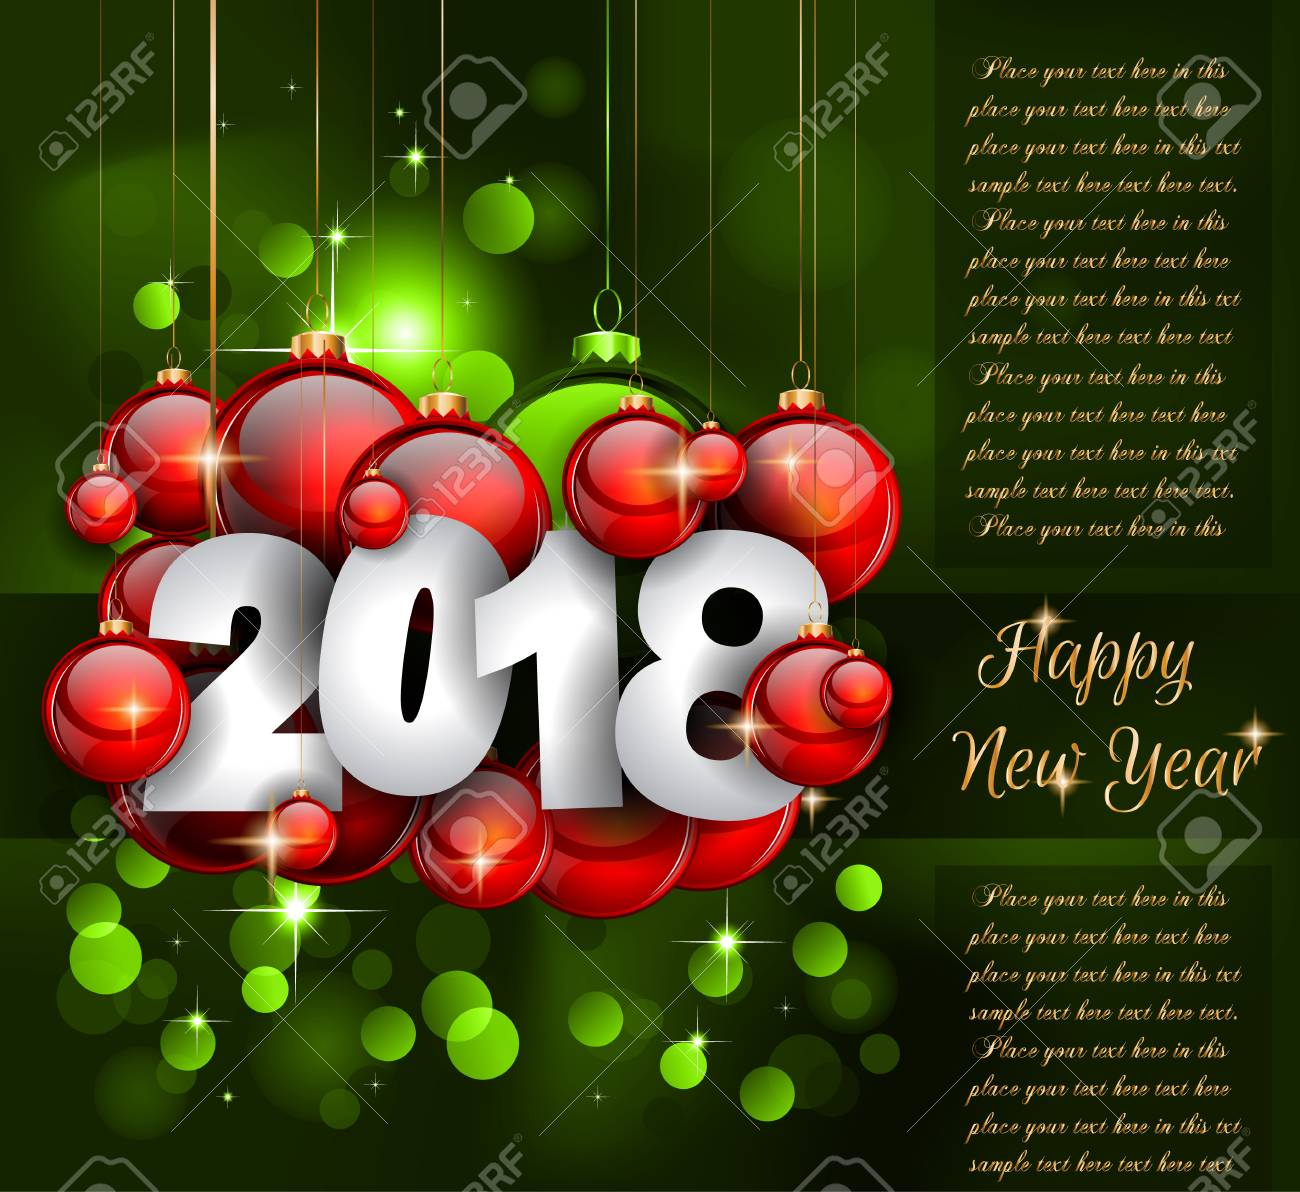 2018 happy new year greetings card or christmas themed invitations 2018 happy new year greetings card or christmas themed invitations stock vector 88698735 m4hsunfo Image collections